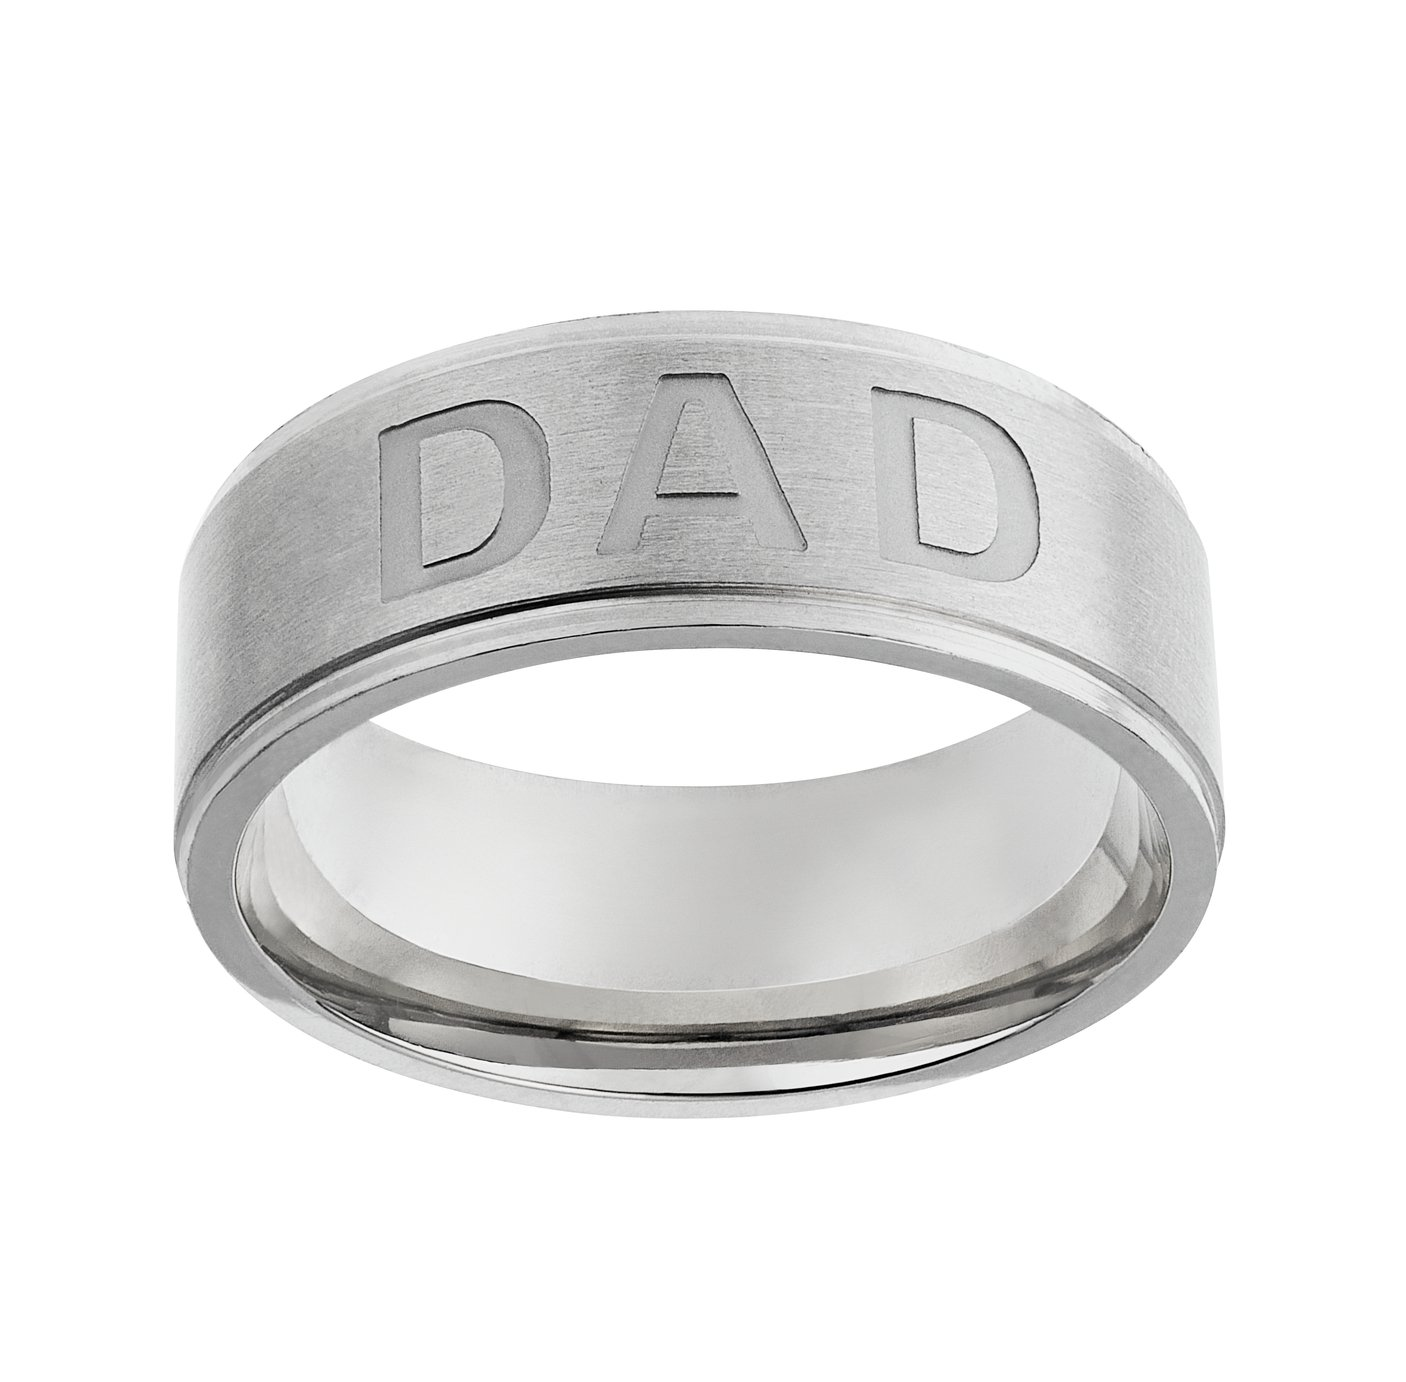 Revere Men's Stainless Steel Dad Ring